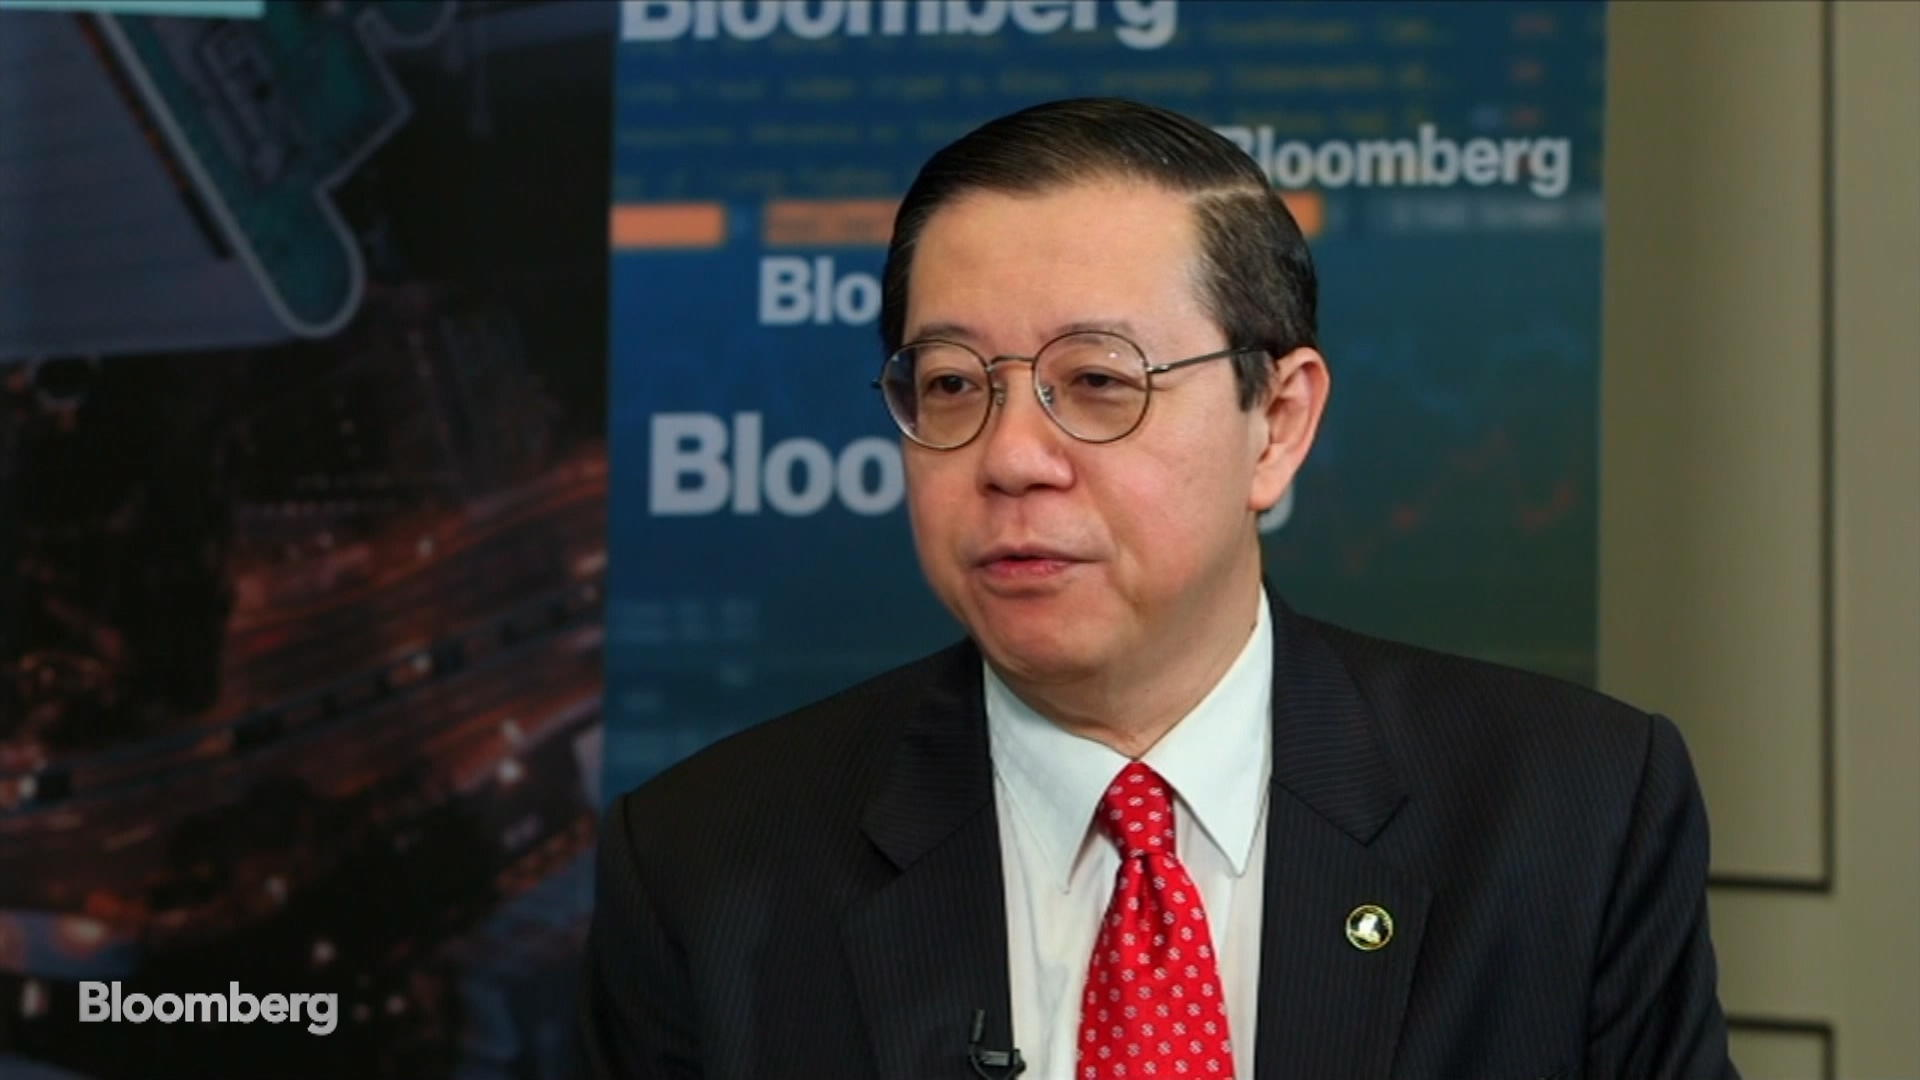 Lim Guan Eng, Malaysian Finance Minister, on Budget, Economy, Policies, 1MDB, Currency